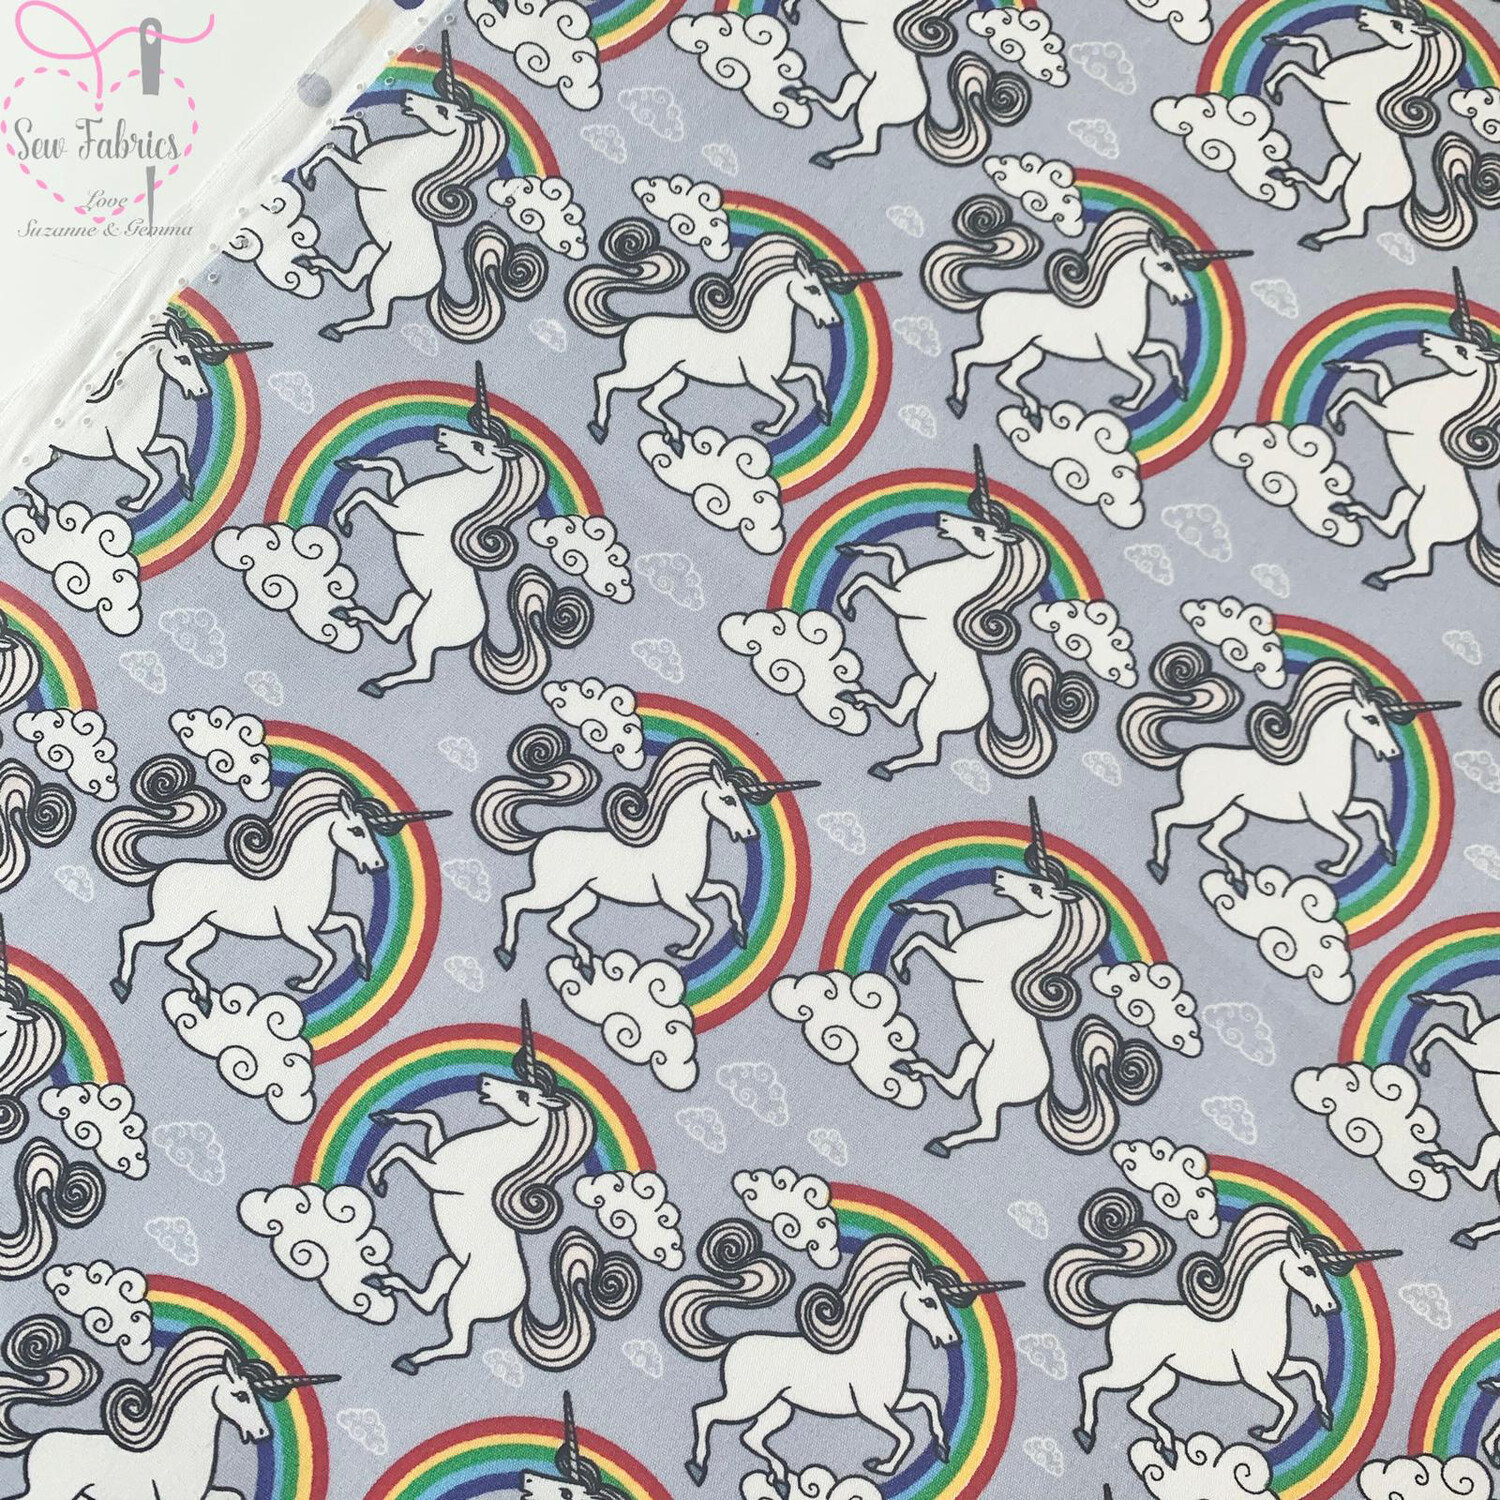 Rose and Hubble Silver Unicorn and Rainbows Print Fabric 100% Cotton Poplin, Children's Material